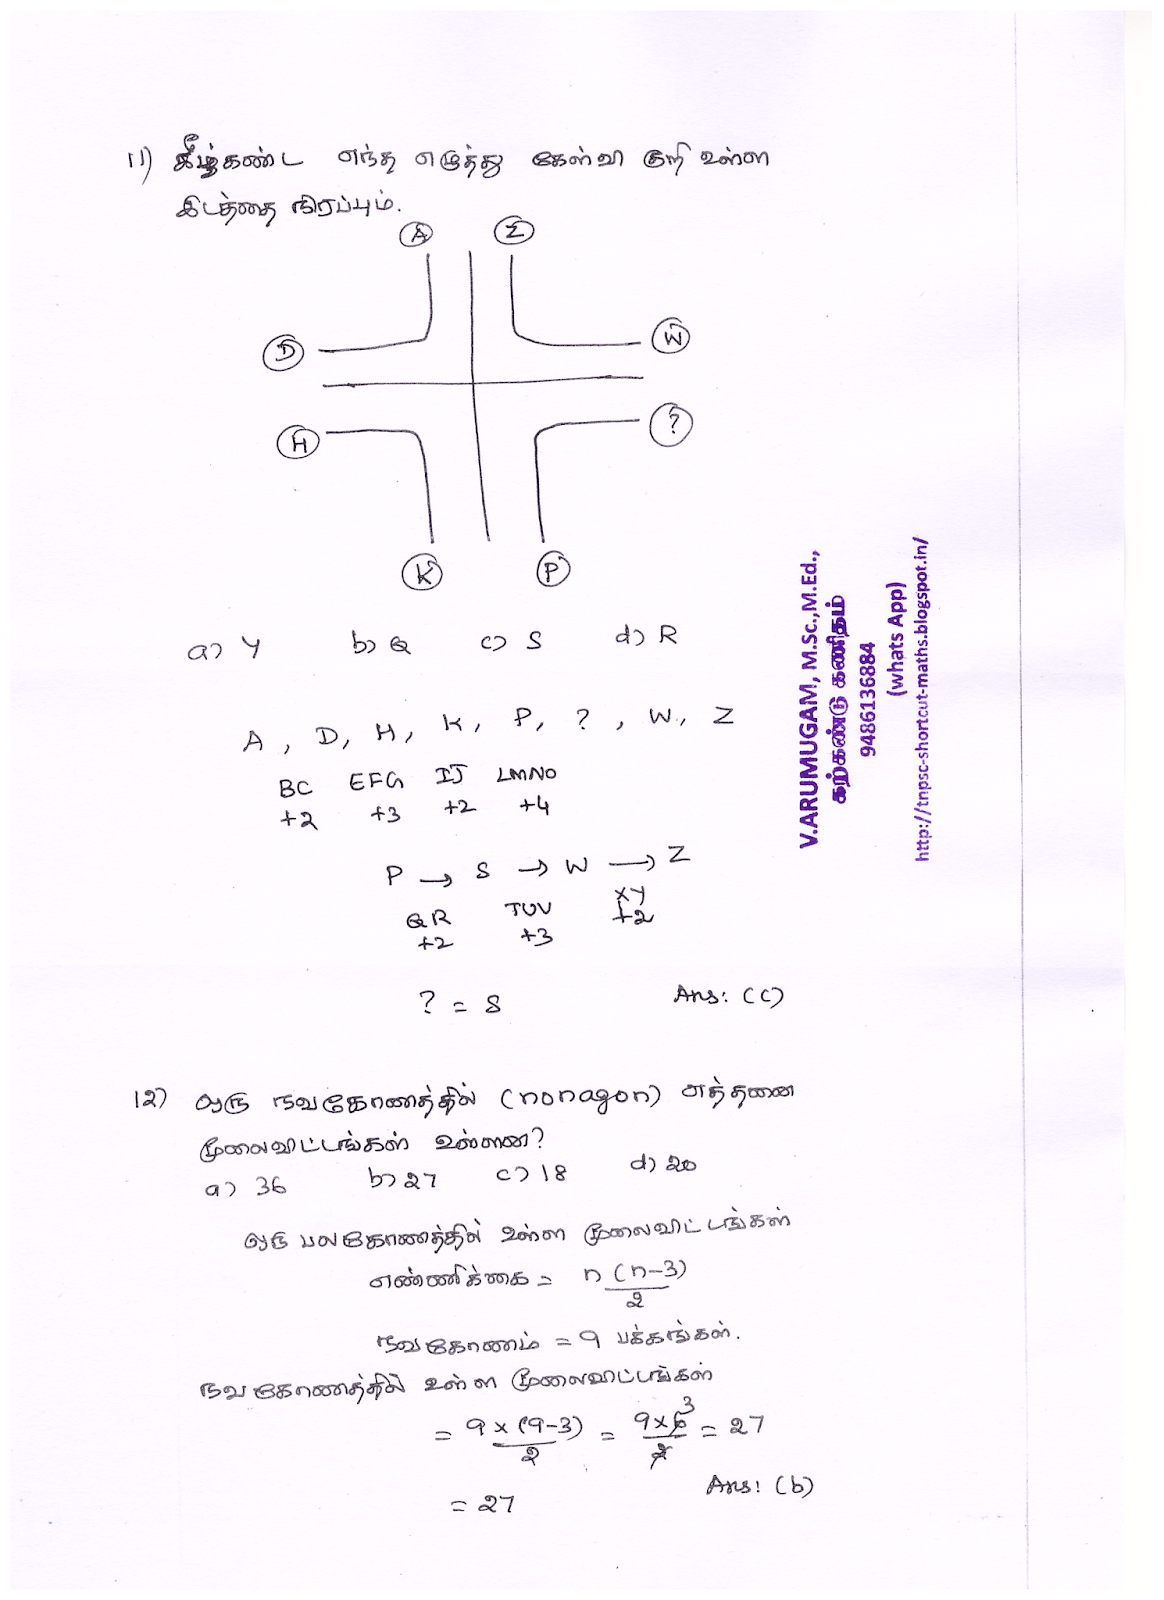 TNPSC – 2019 - Technical Assistant (Air Conditioning & Gas Plant) in the TN Forensic Science Subordinate Service EXAM - EXAM DATE: 05.01.2019